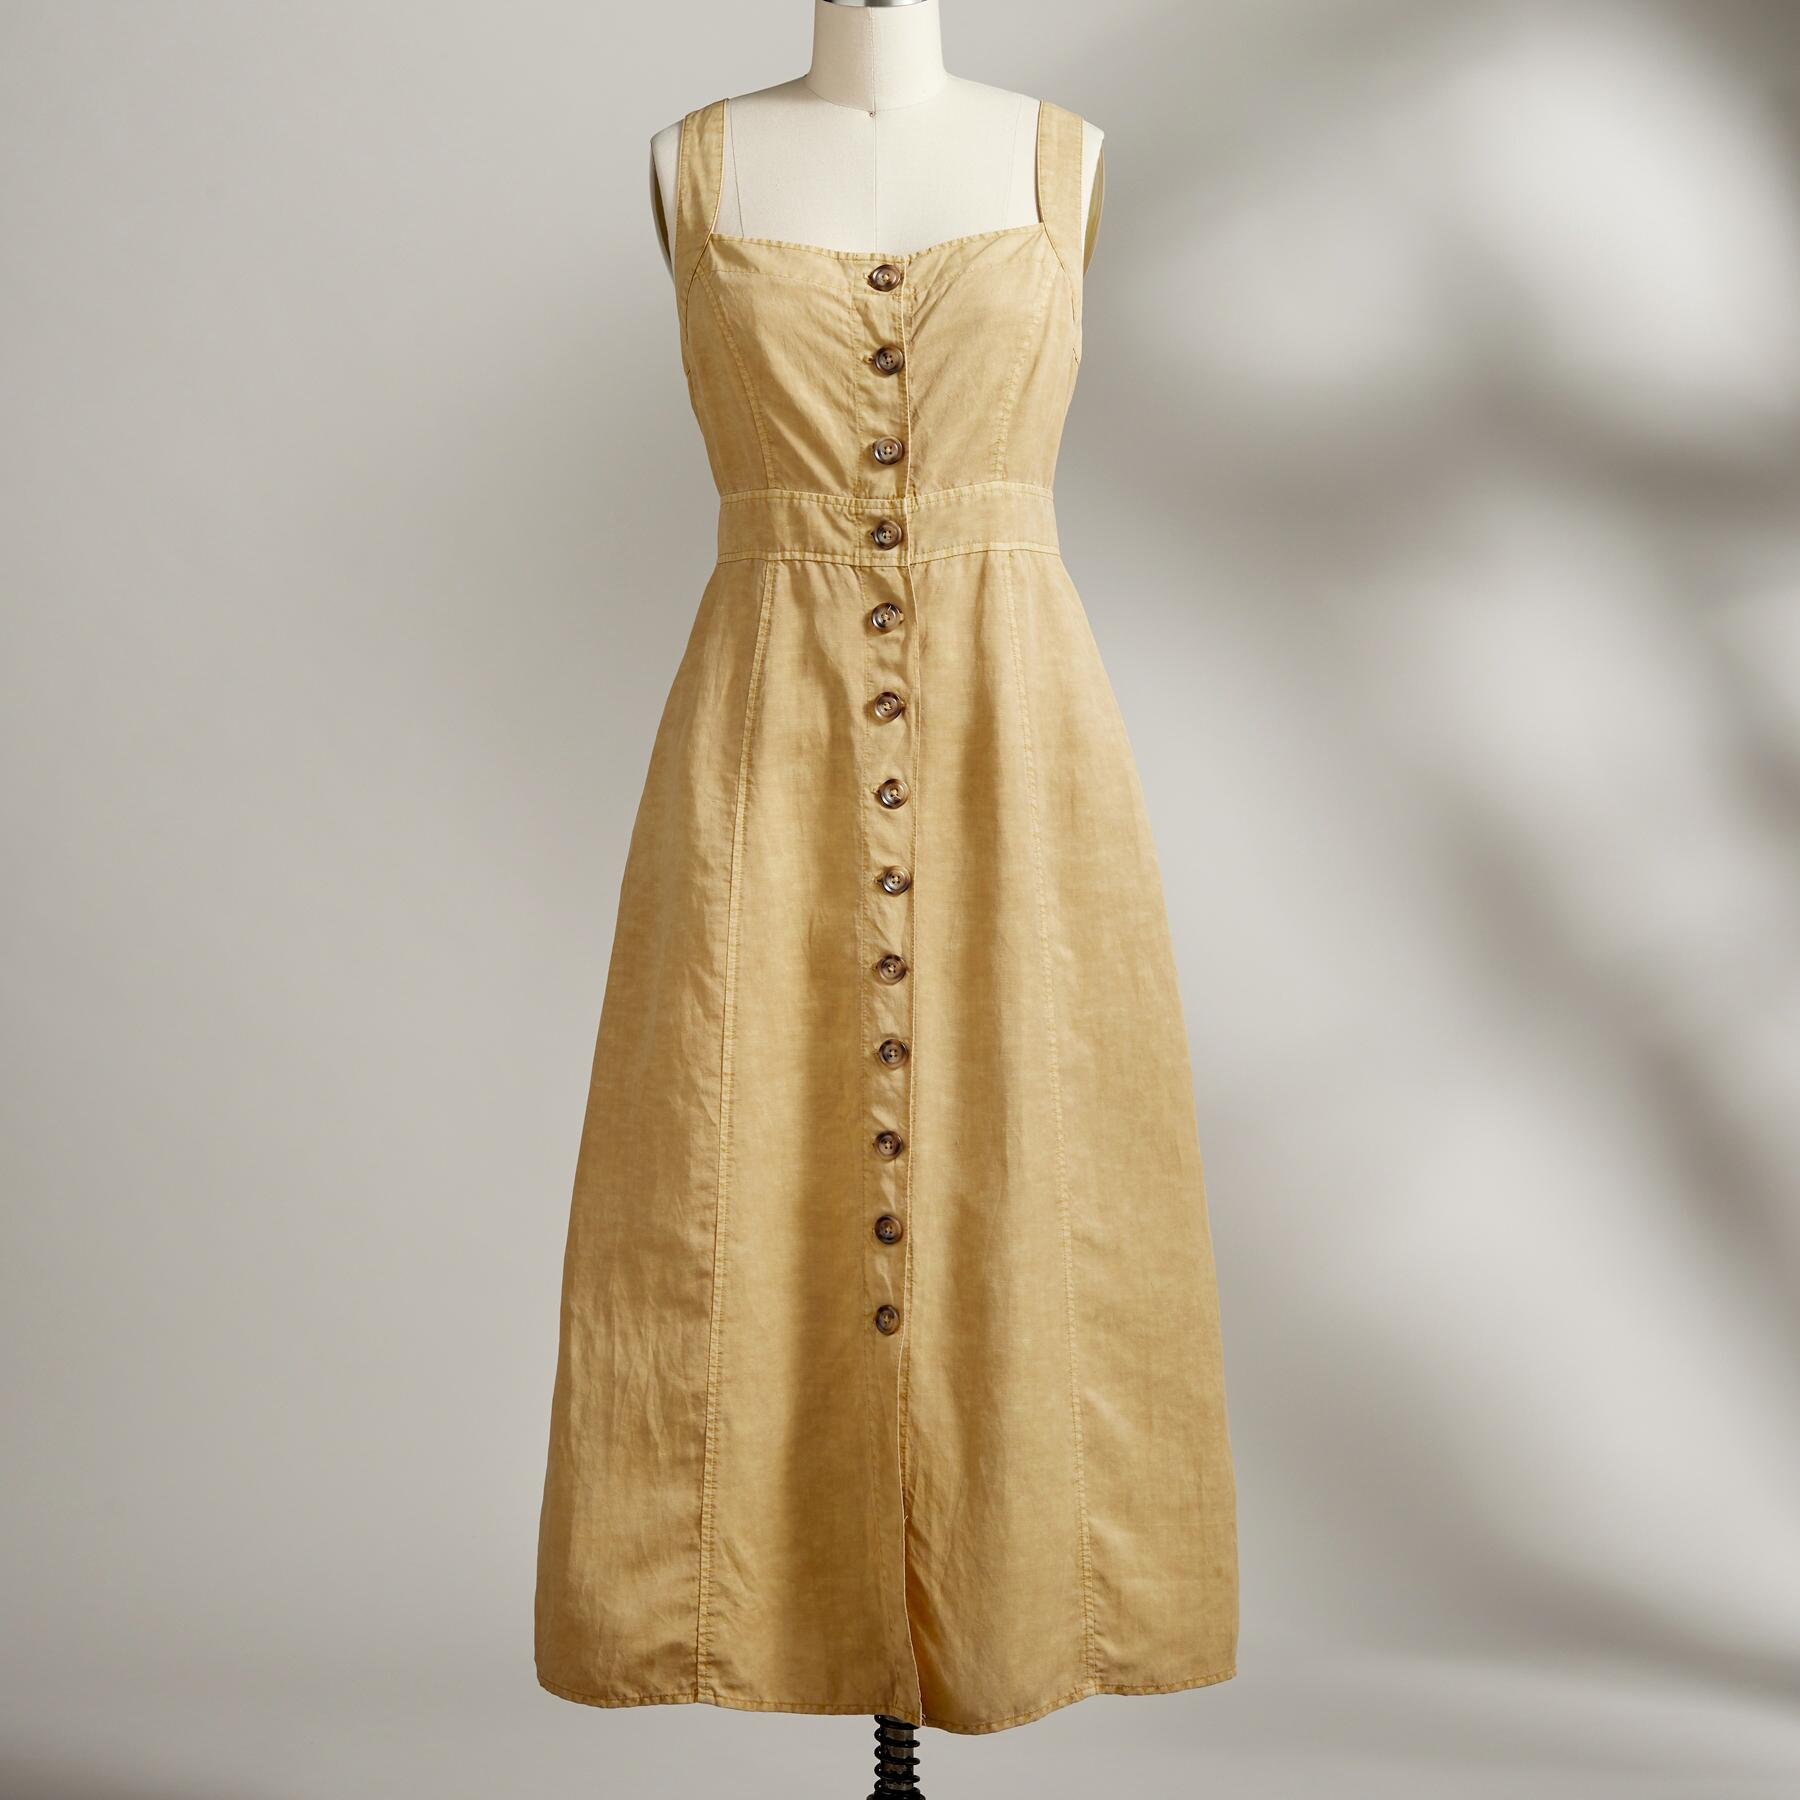 COLONIAL DRESS: View 2